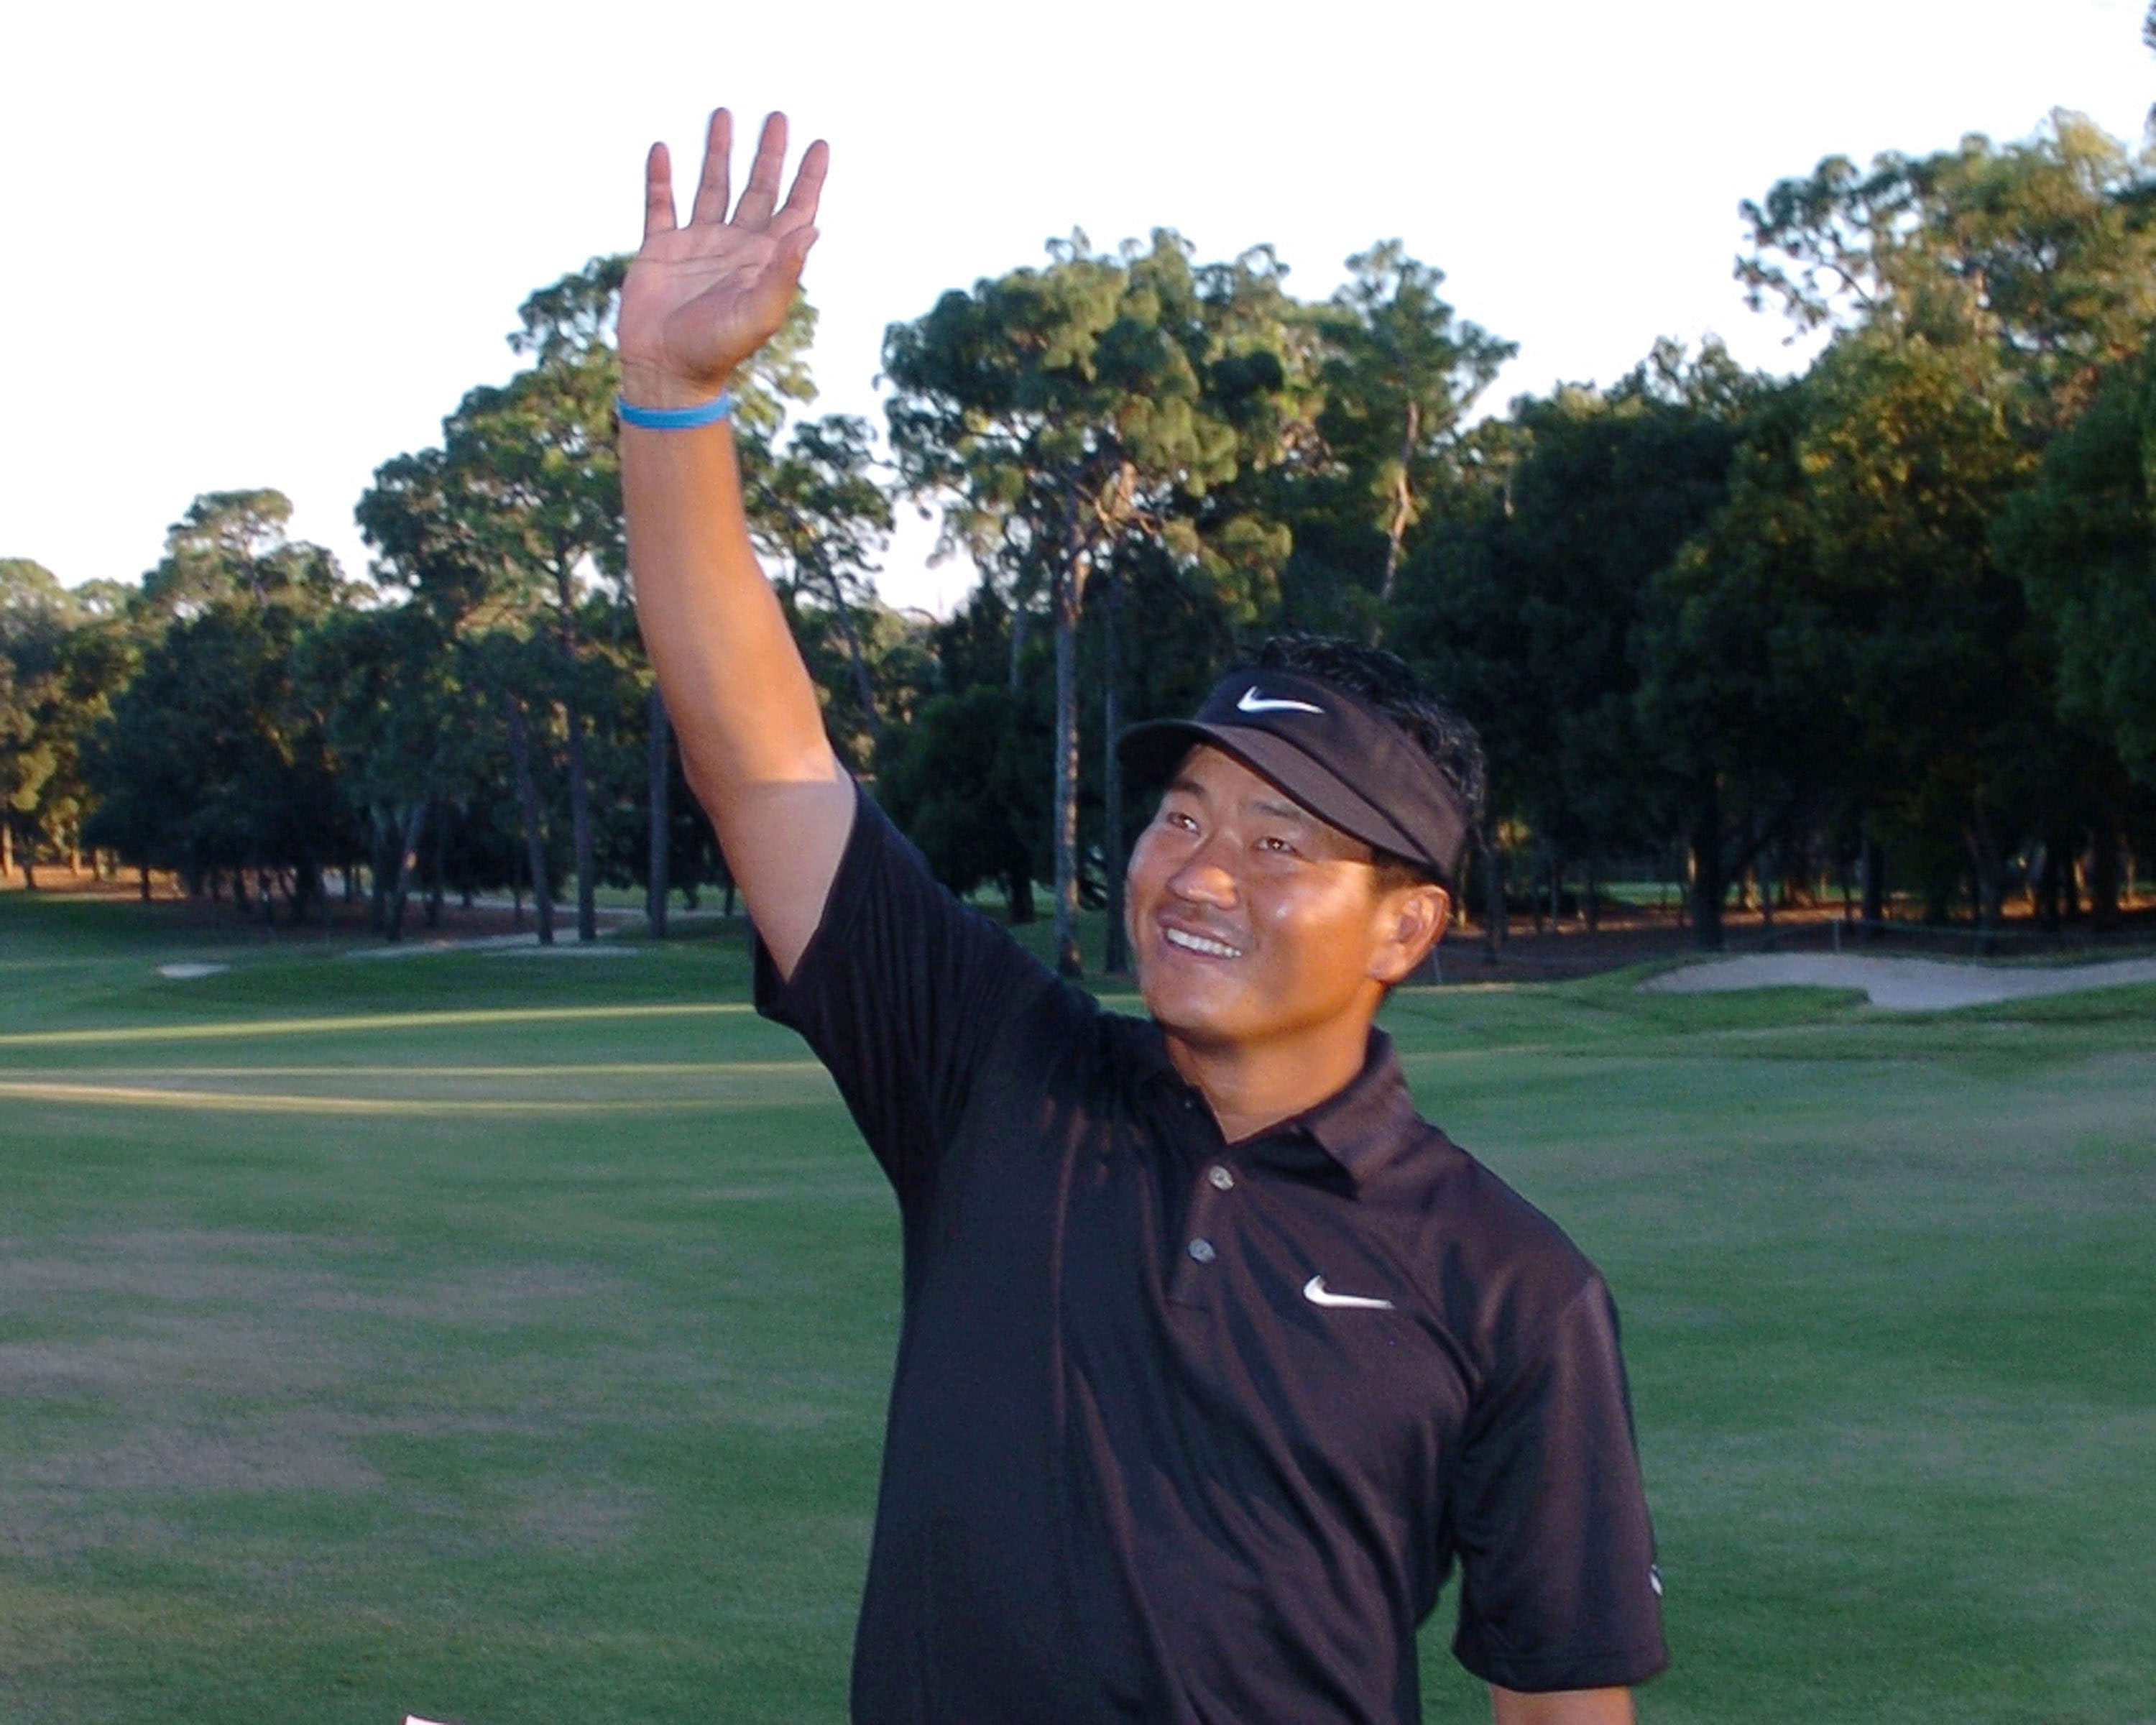 9. 2006: Choi's second Tampa win